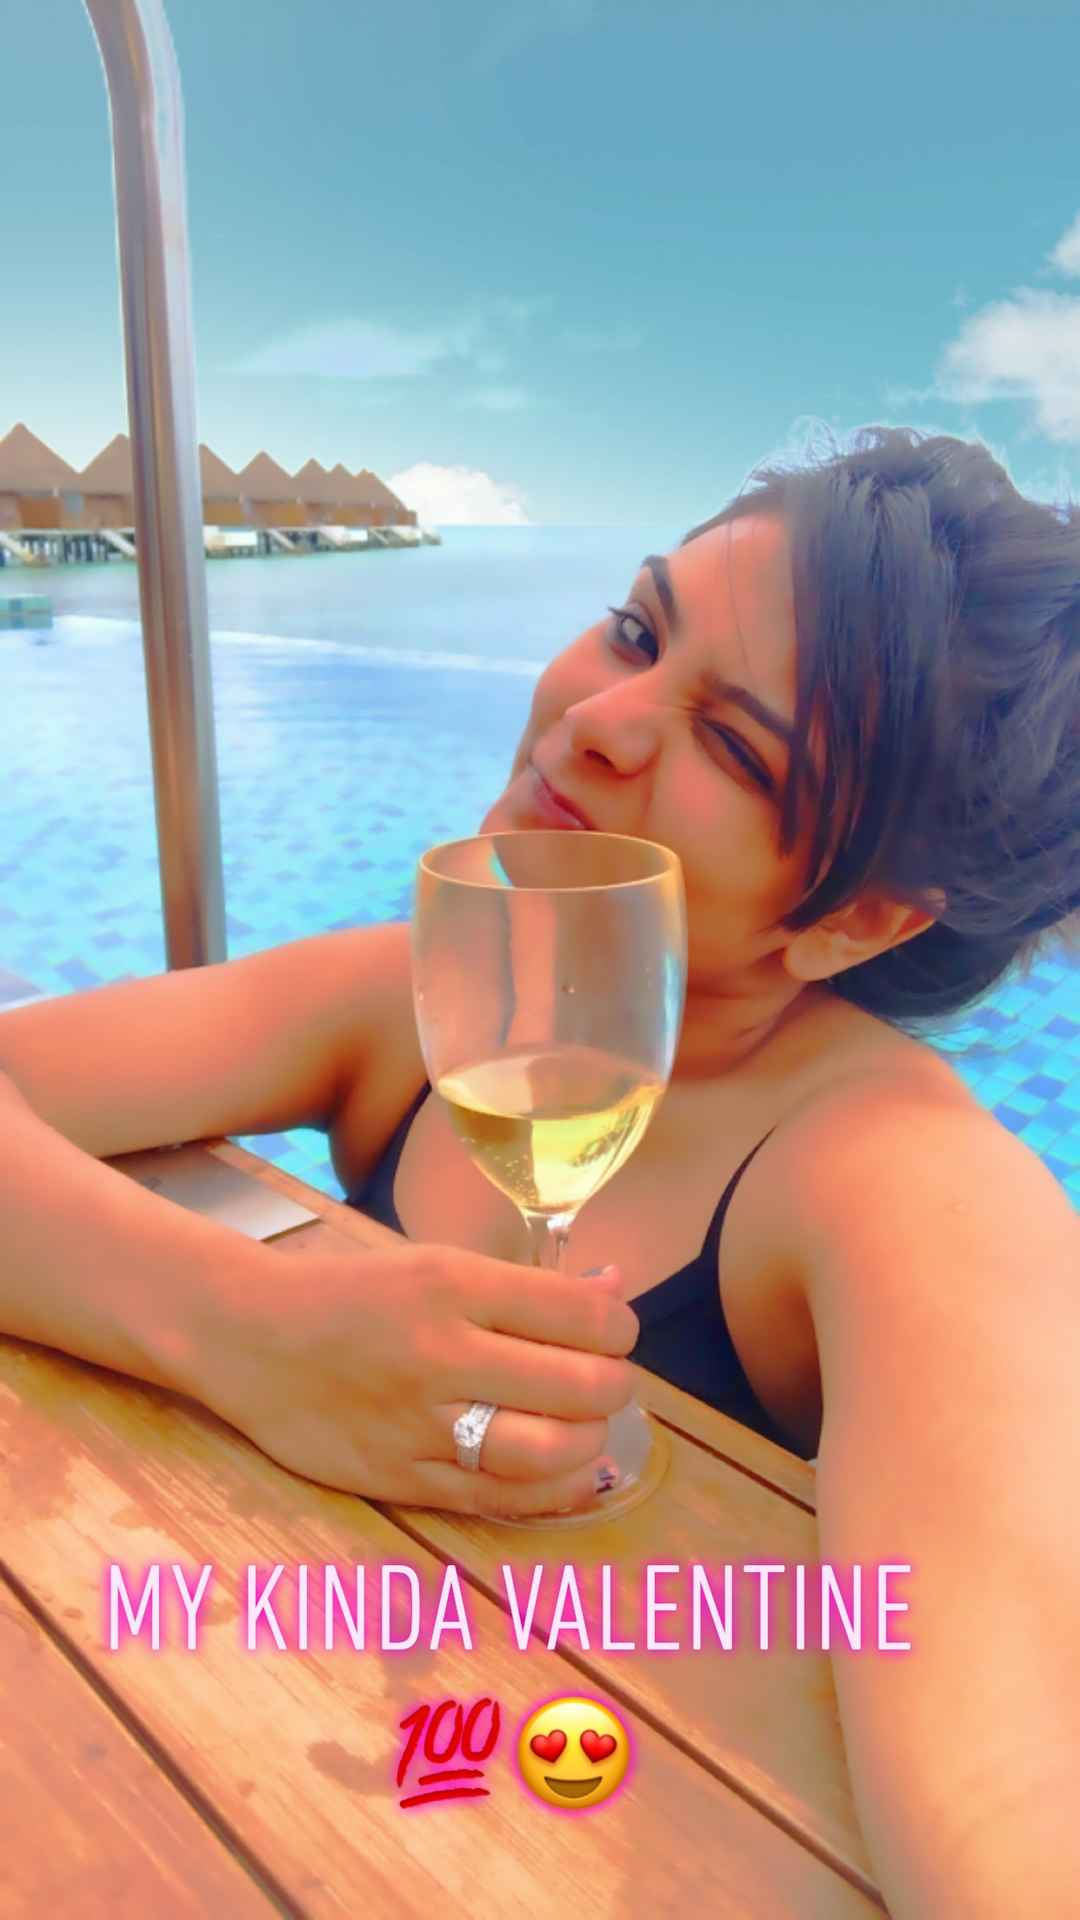 Maldives ???????? Valentine selfie ???? With breathtaking view ????from my villa#selfiewithAview#tri